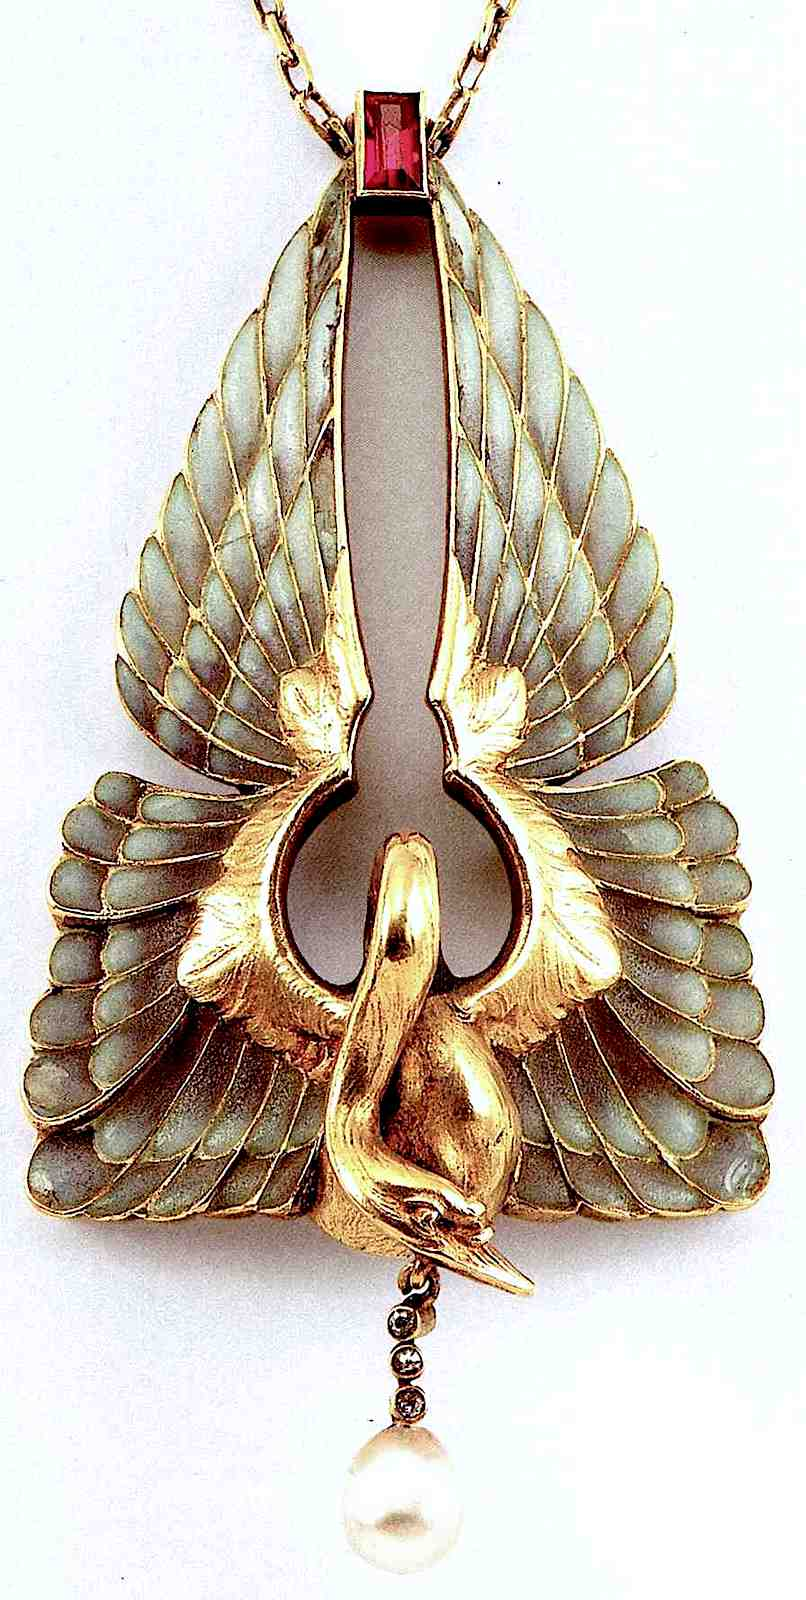 a color photograph of Philippe Wolfers jewelry, a gold bird broach with pearl pendant